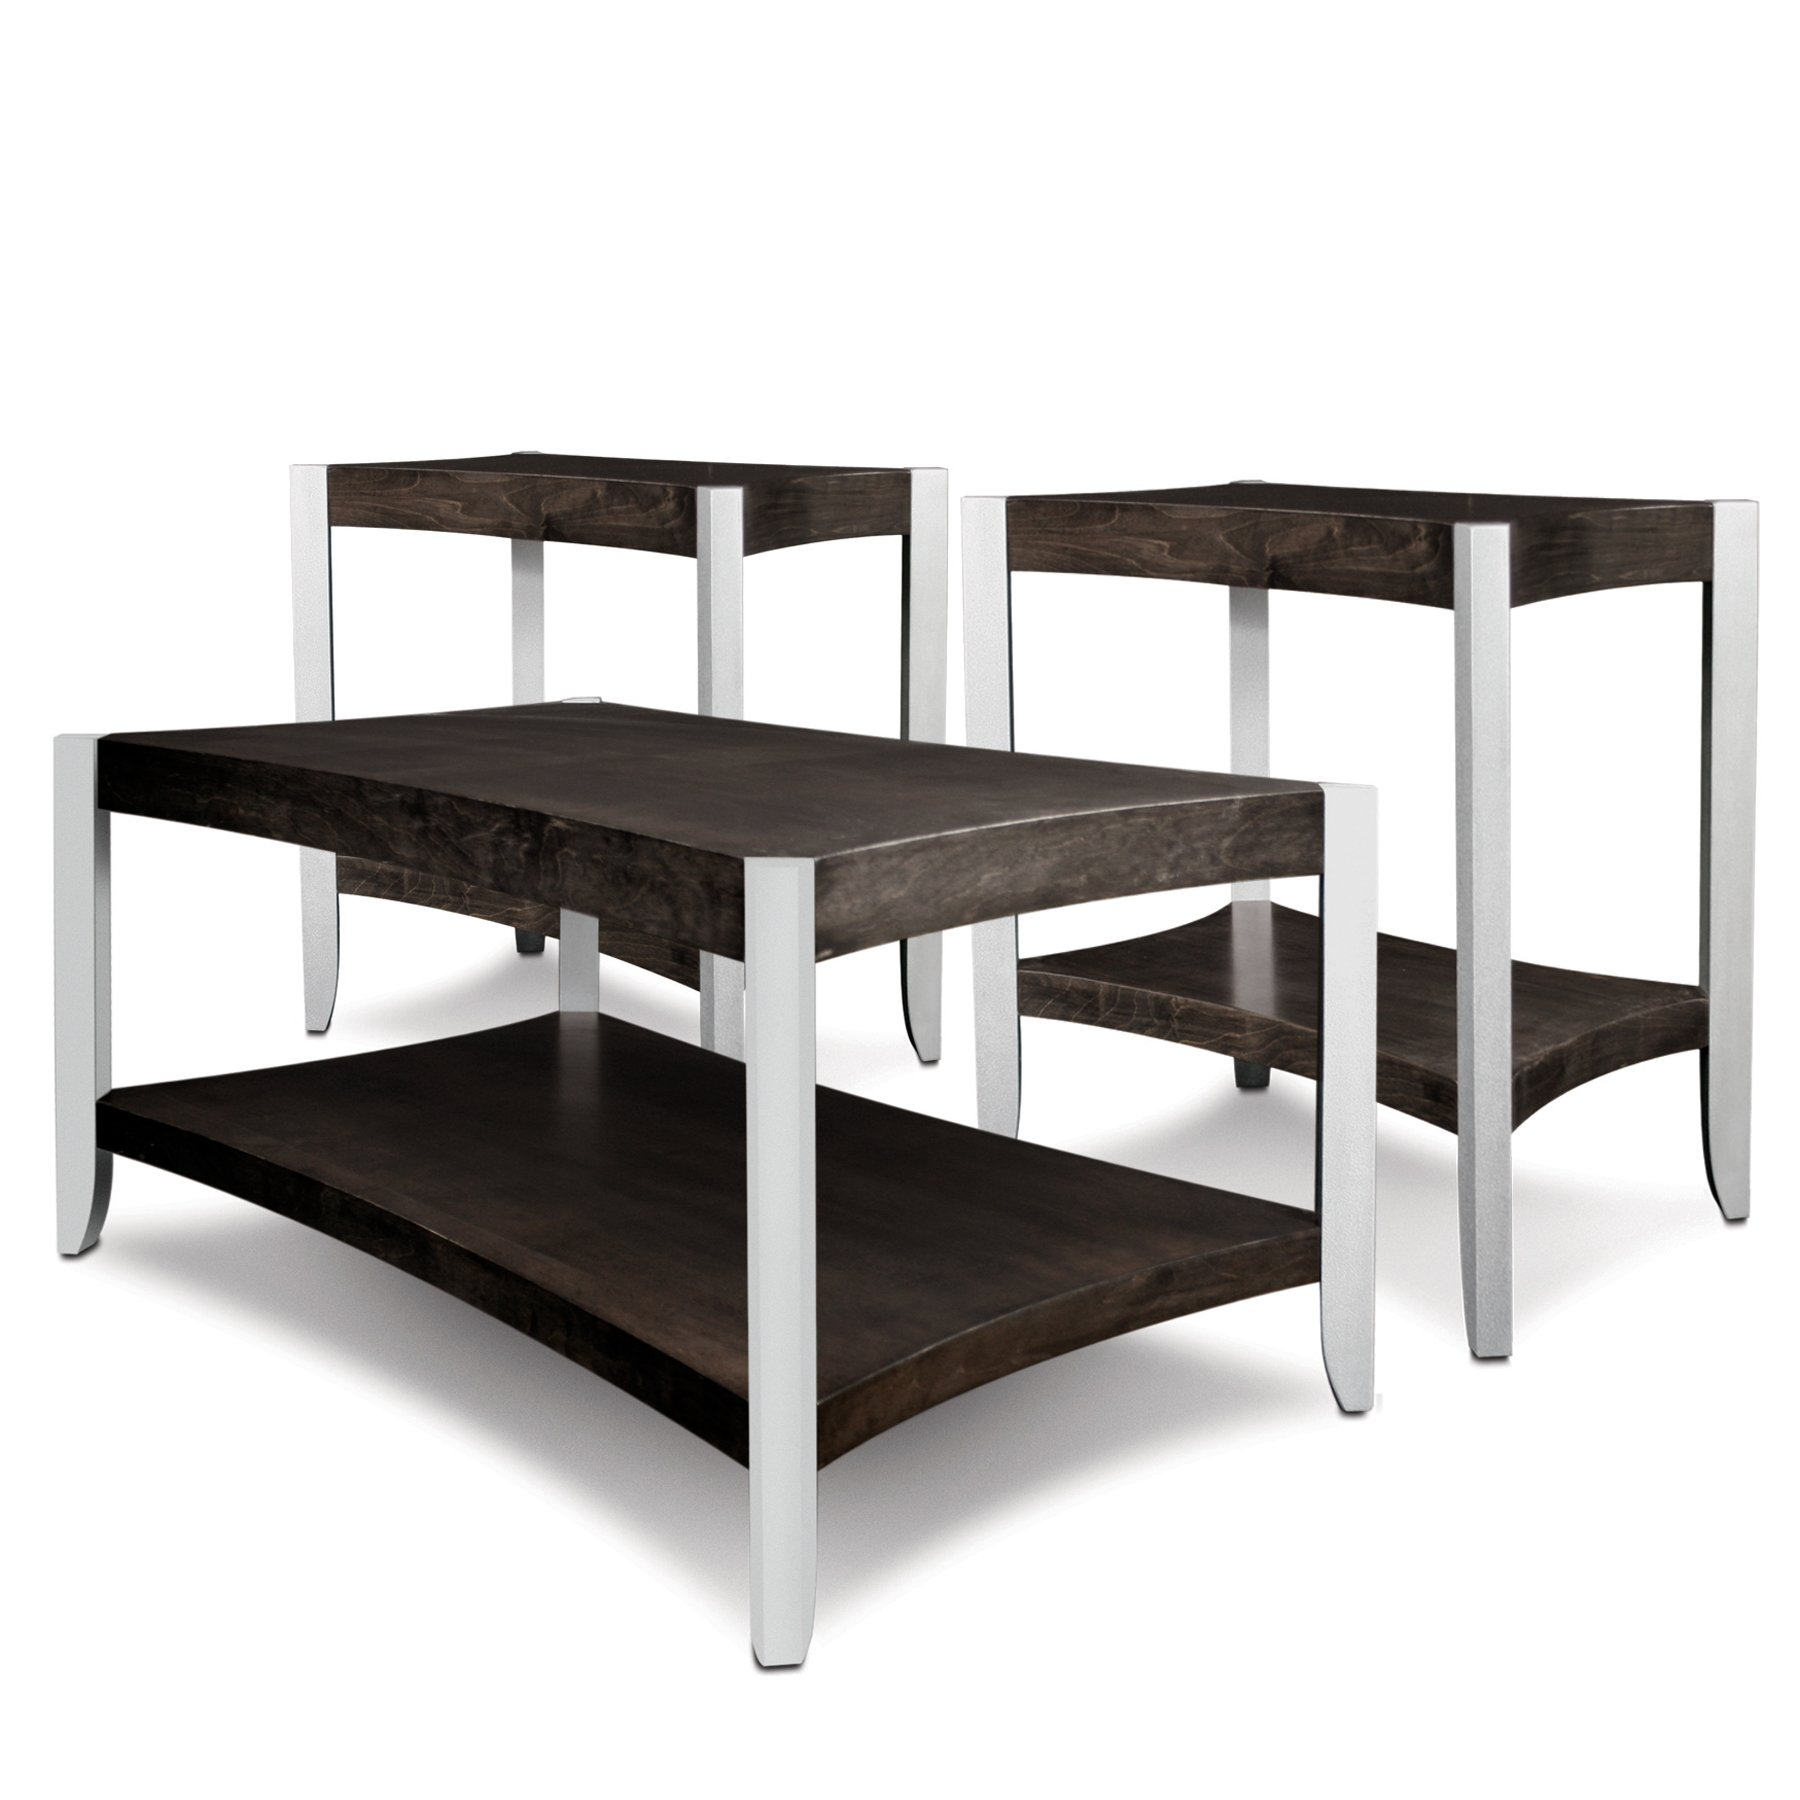 Leick Aluminum Condo/Apartment Coffee Table & Two End Tables (3 Pack), Smoky Onyx & Faux